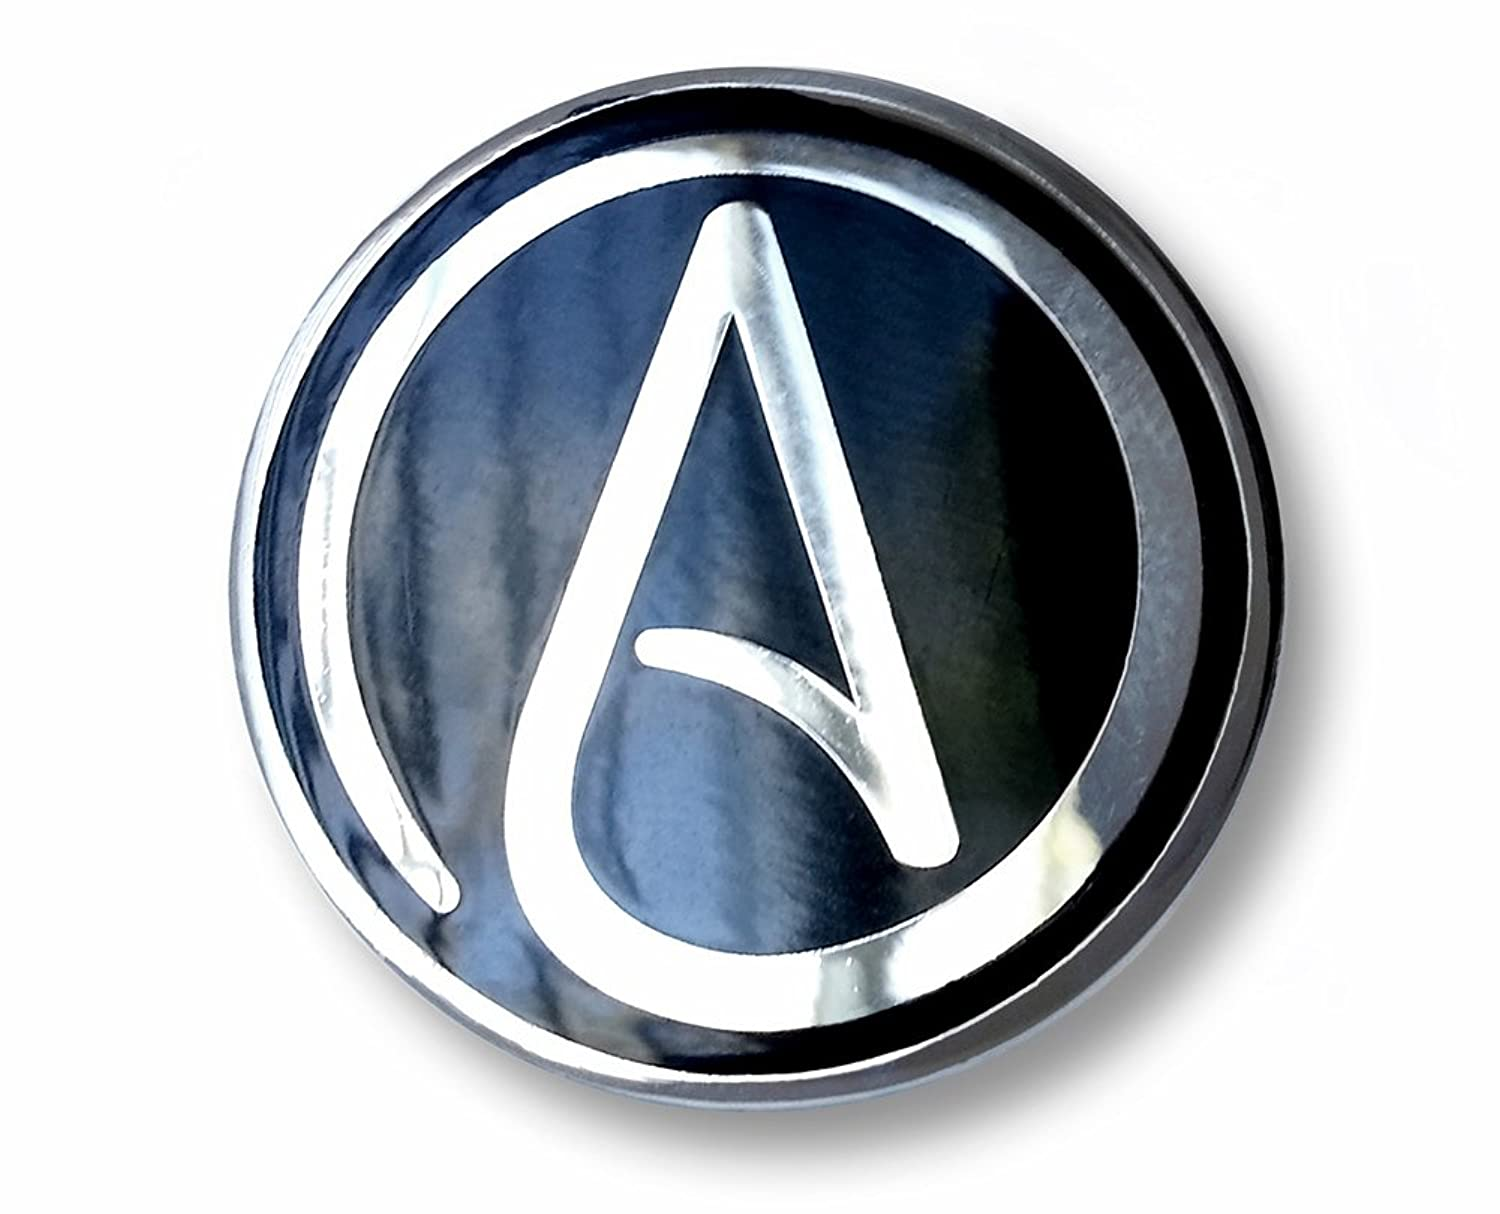 Atheist Symbol Lapel Pin Jewelry